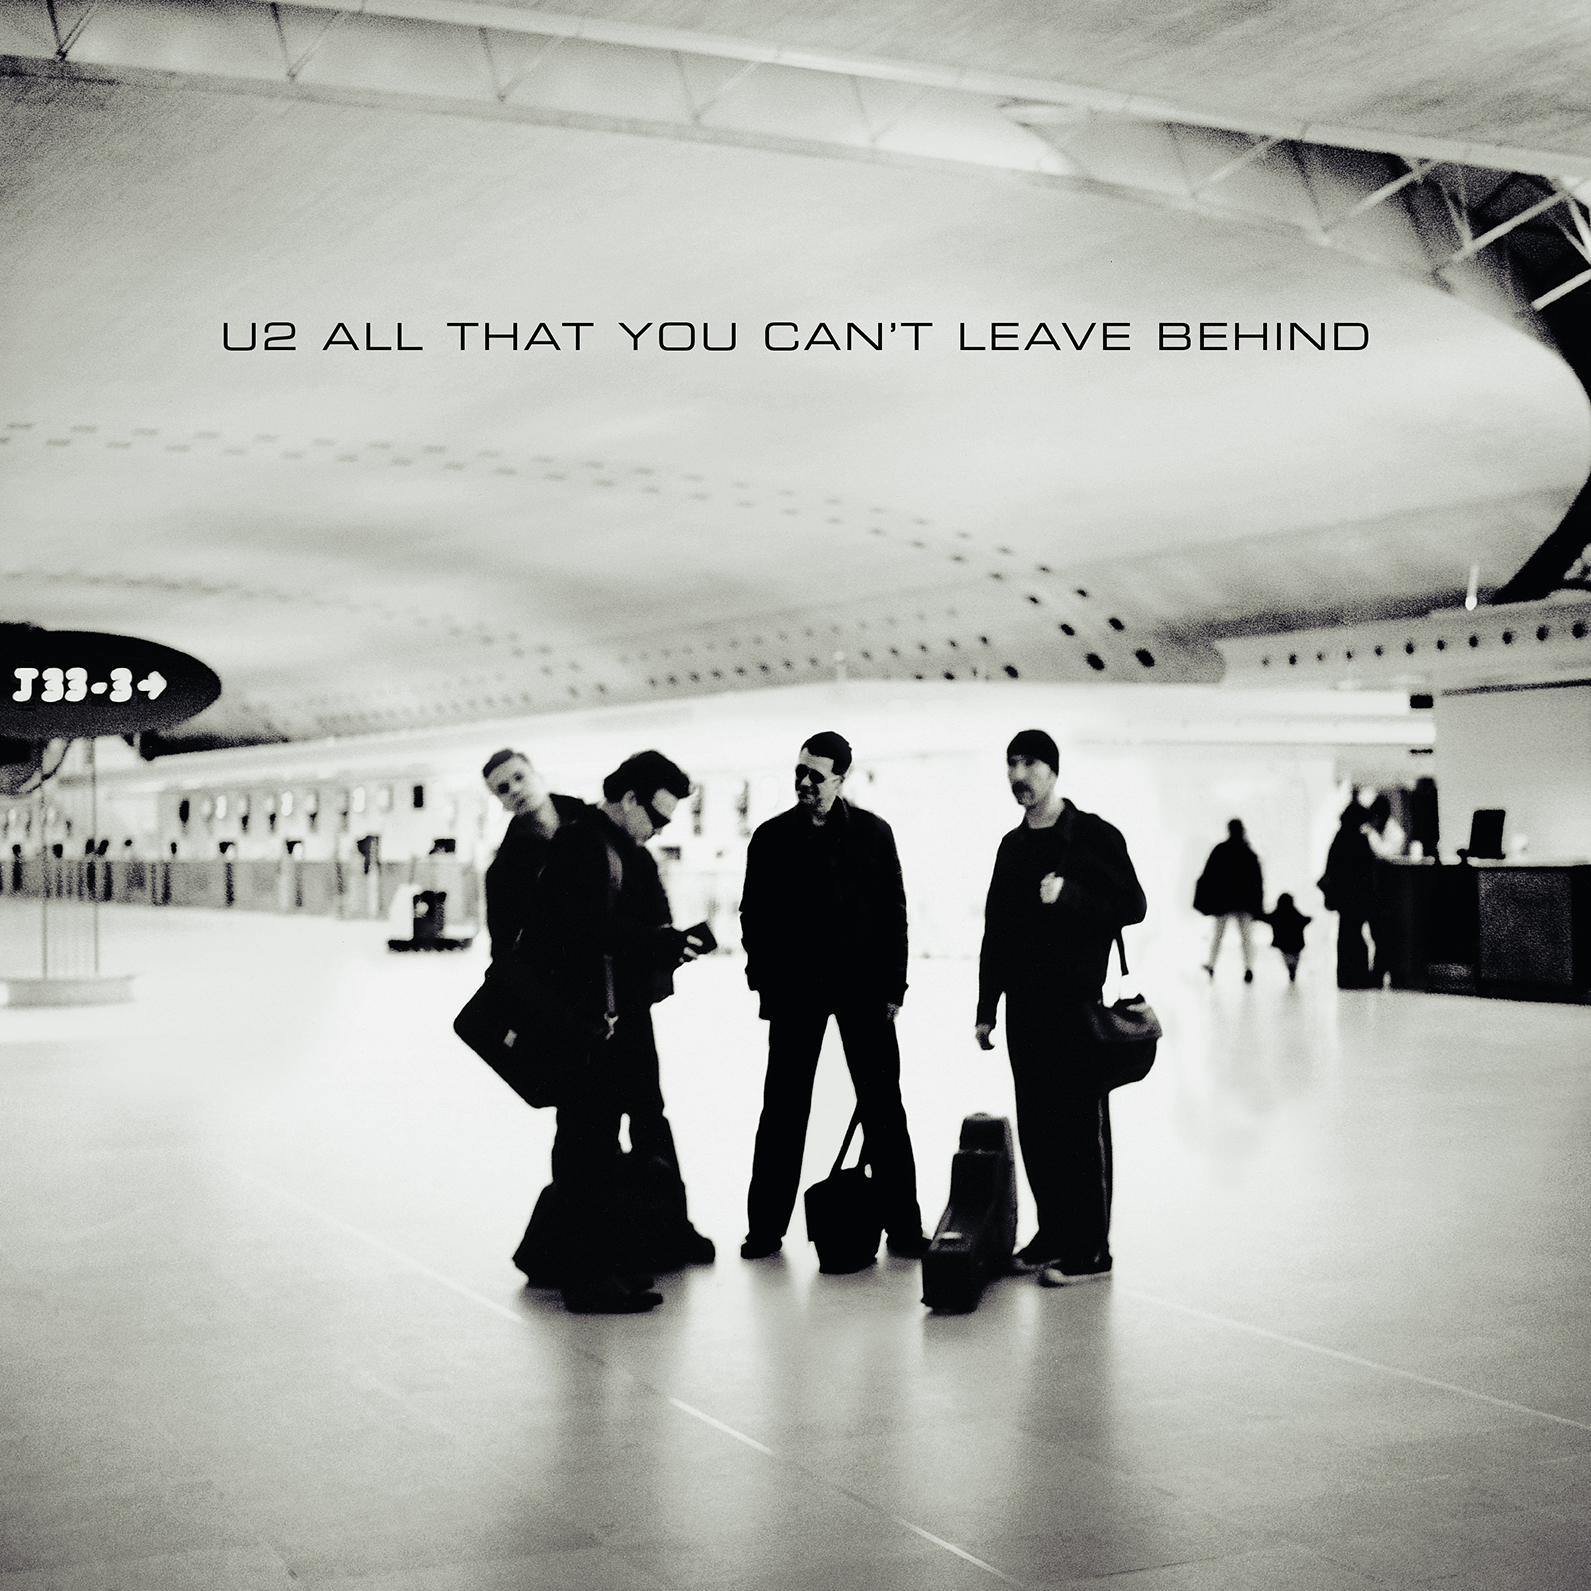 U2 - All You Can't Leave Behind